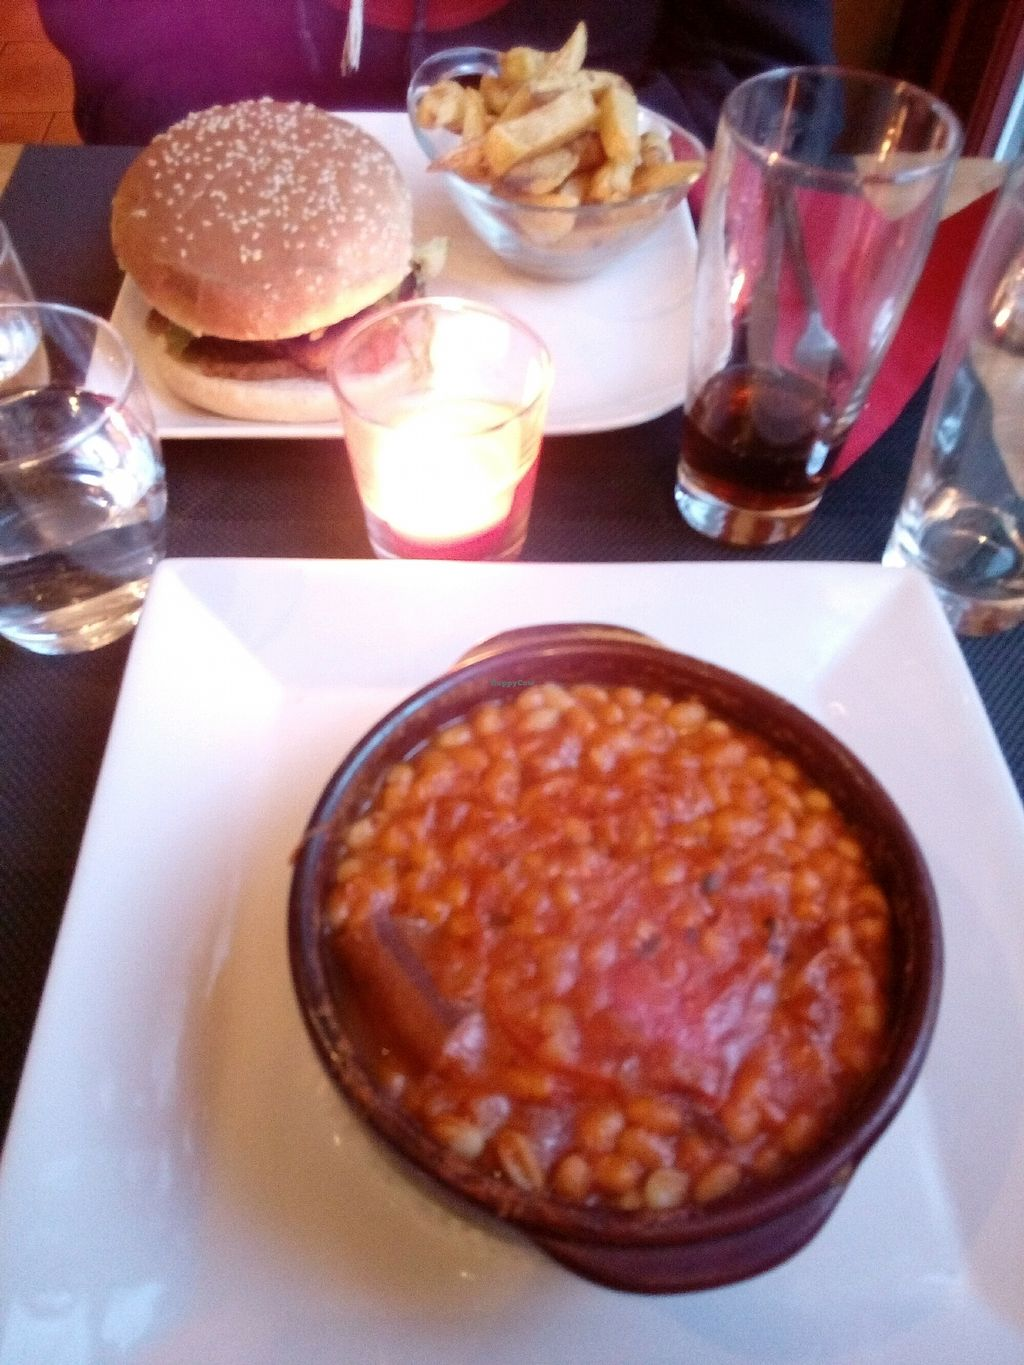 """Photo of Restaurant le 104  by <a href=""""/members/profile/falatel"""">falatel</a> <br/>burger y cassoulette vegano <br/> March 30, 2018  - <a href='/contact/abuse/image/92615/378454'>Report</a>"""